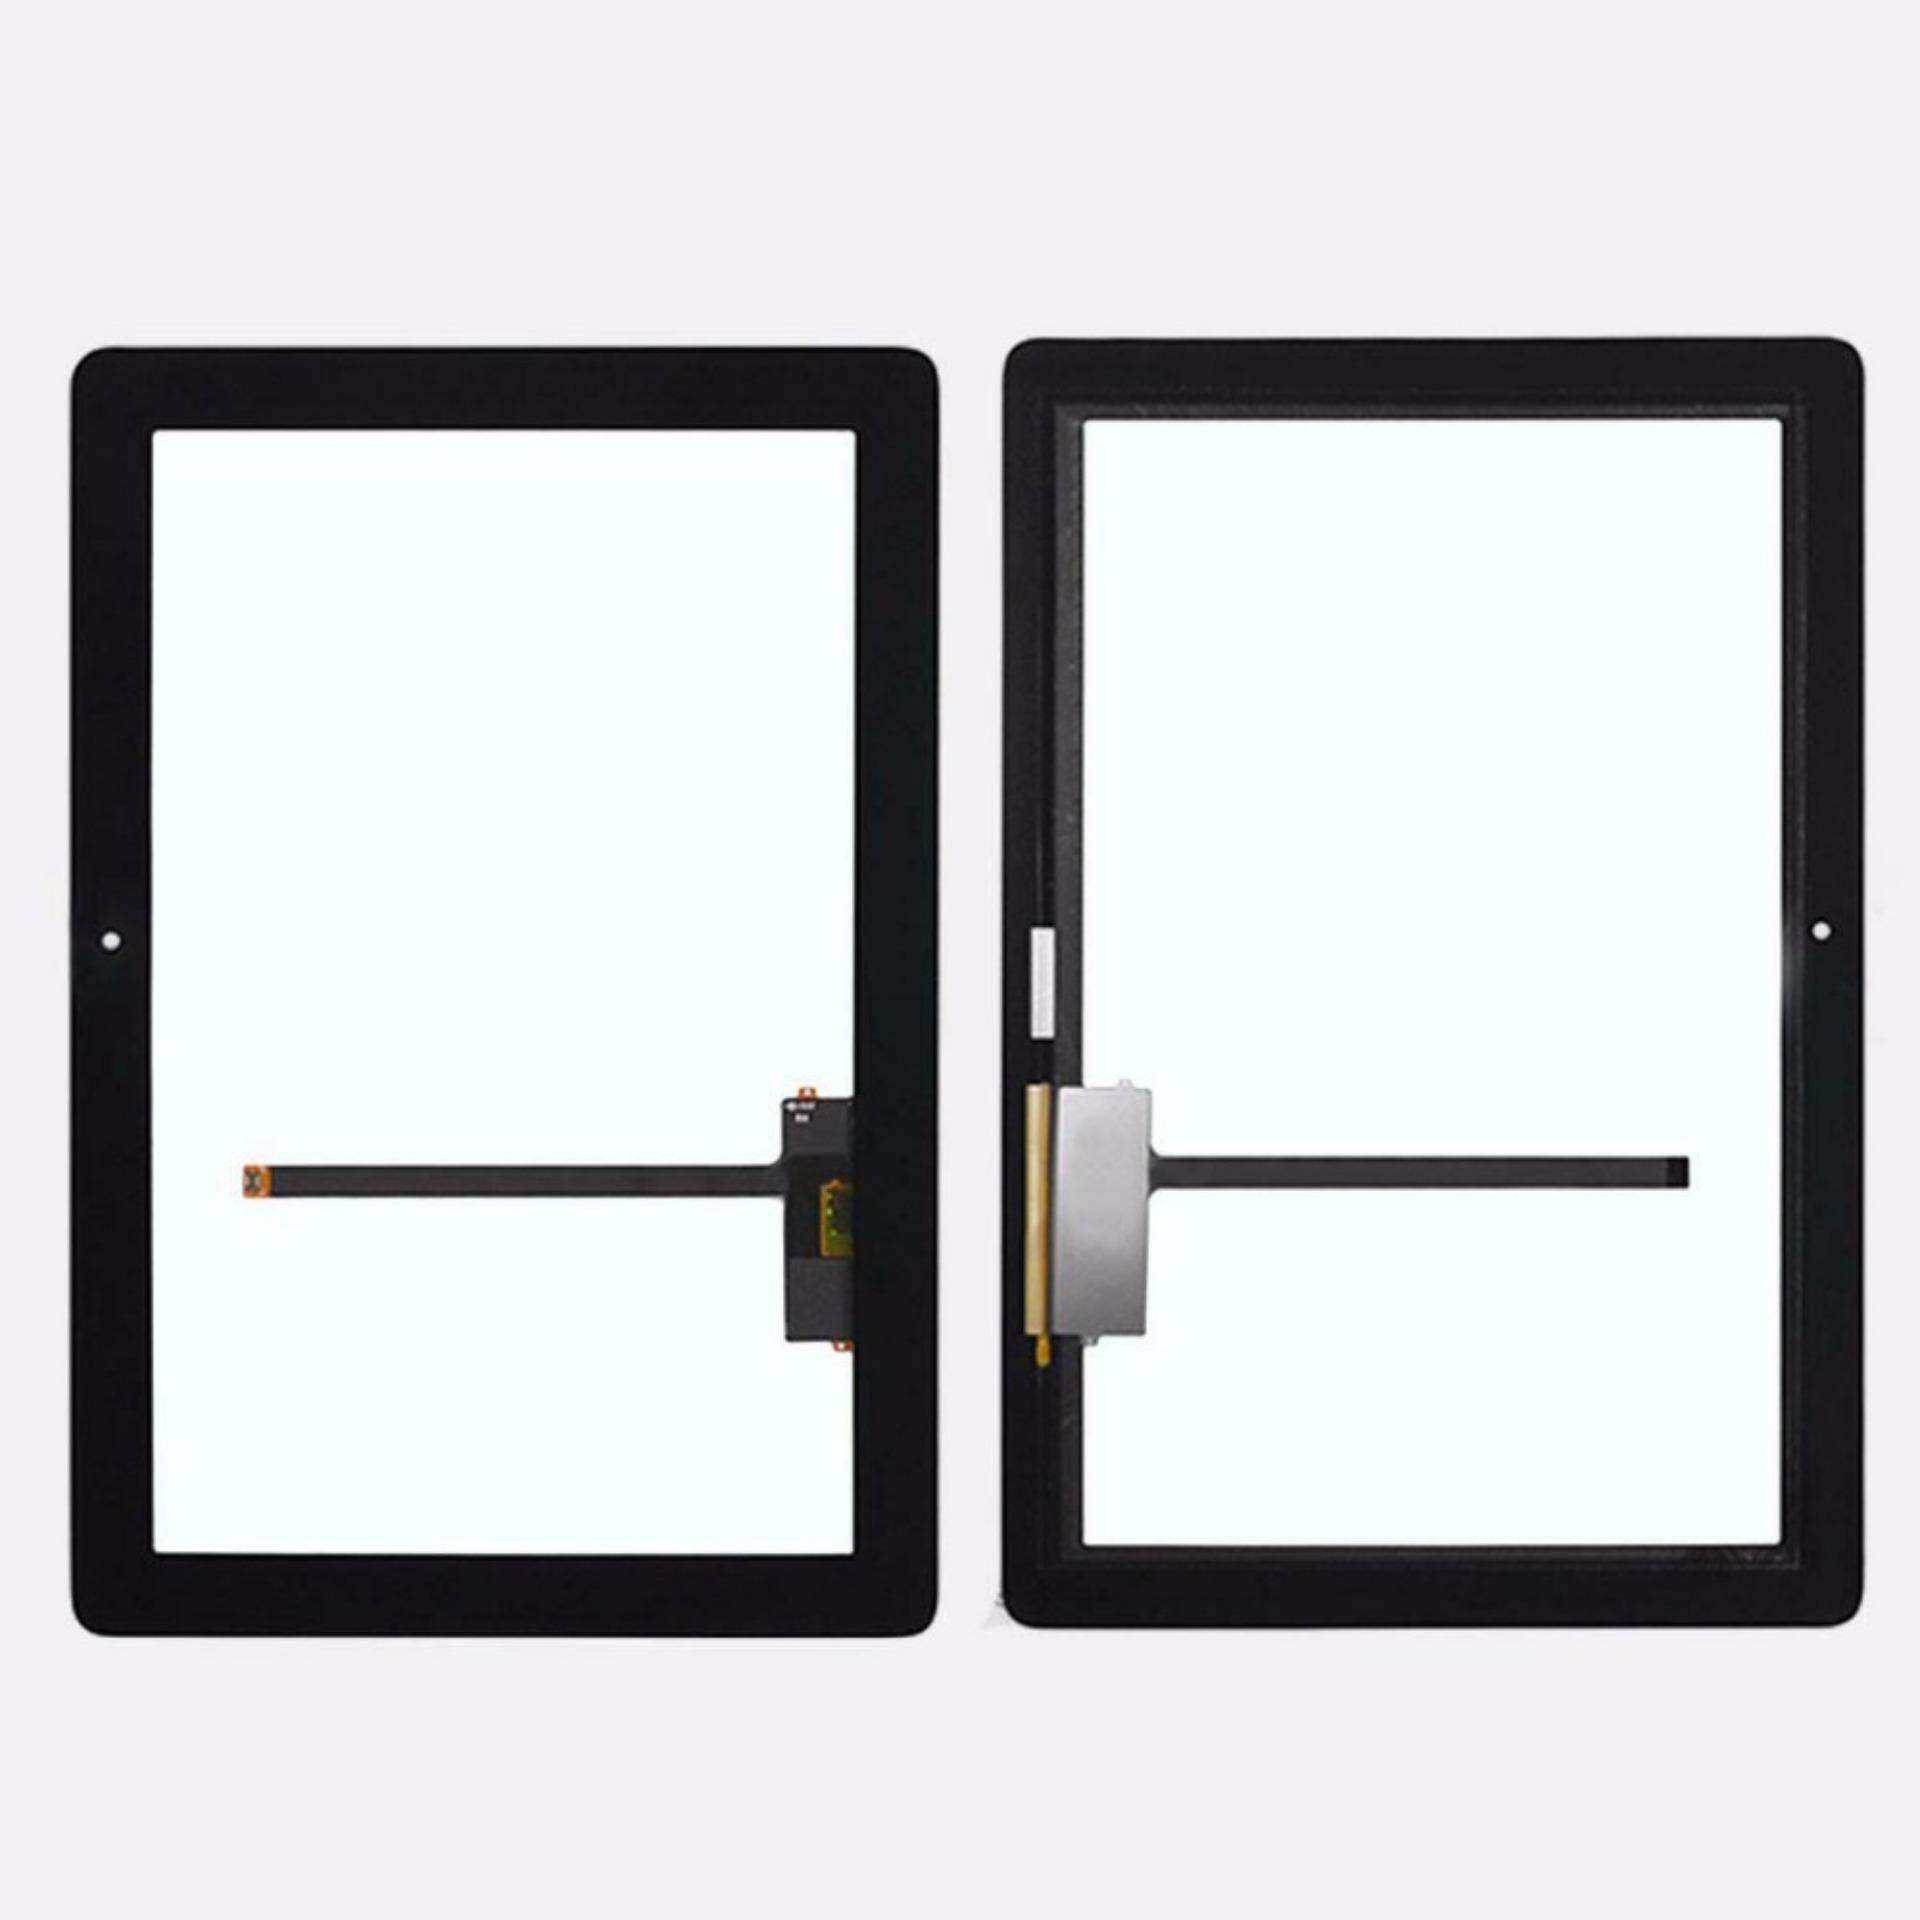 For Huawei Mediapad 10 FHD S10-101 S10-101U S10-101W Replacement Touch Screen Digitizer Glass 10.1-inch - intl